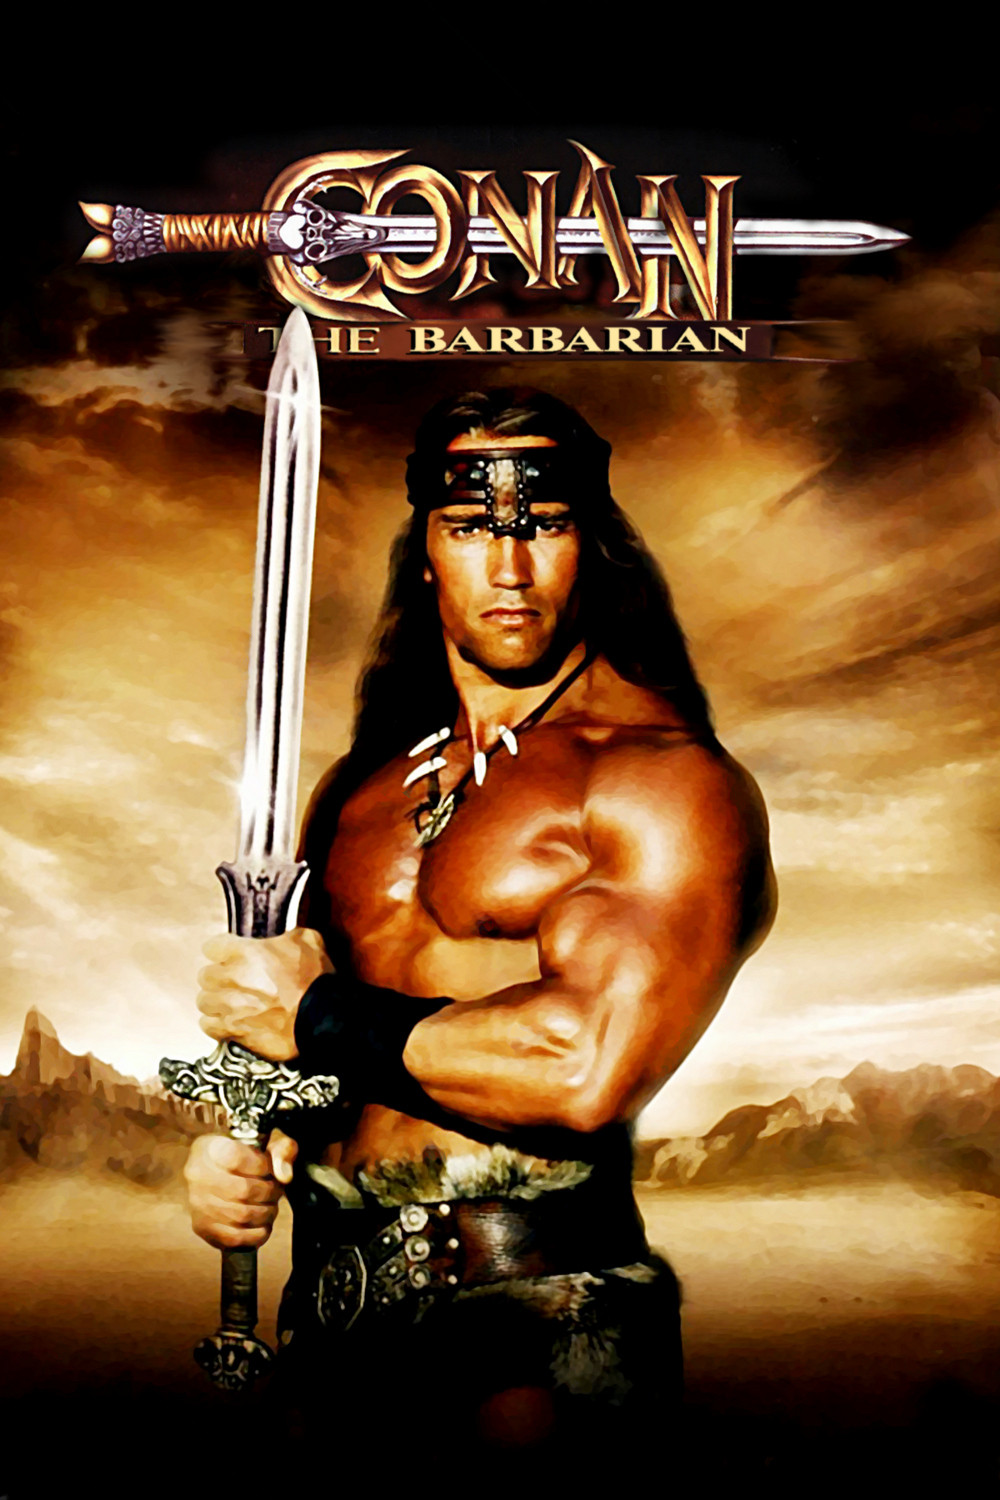 Conan The Barbarian 1982 Wallpaper Conan The Barbarian 1982